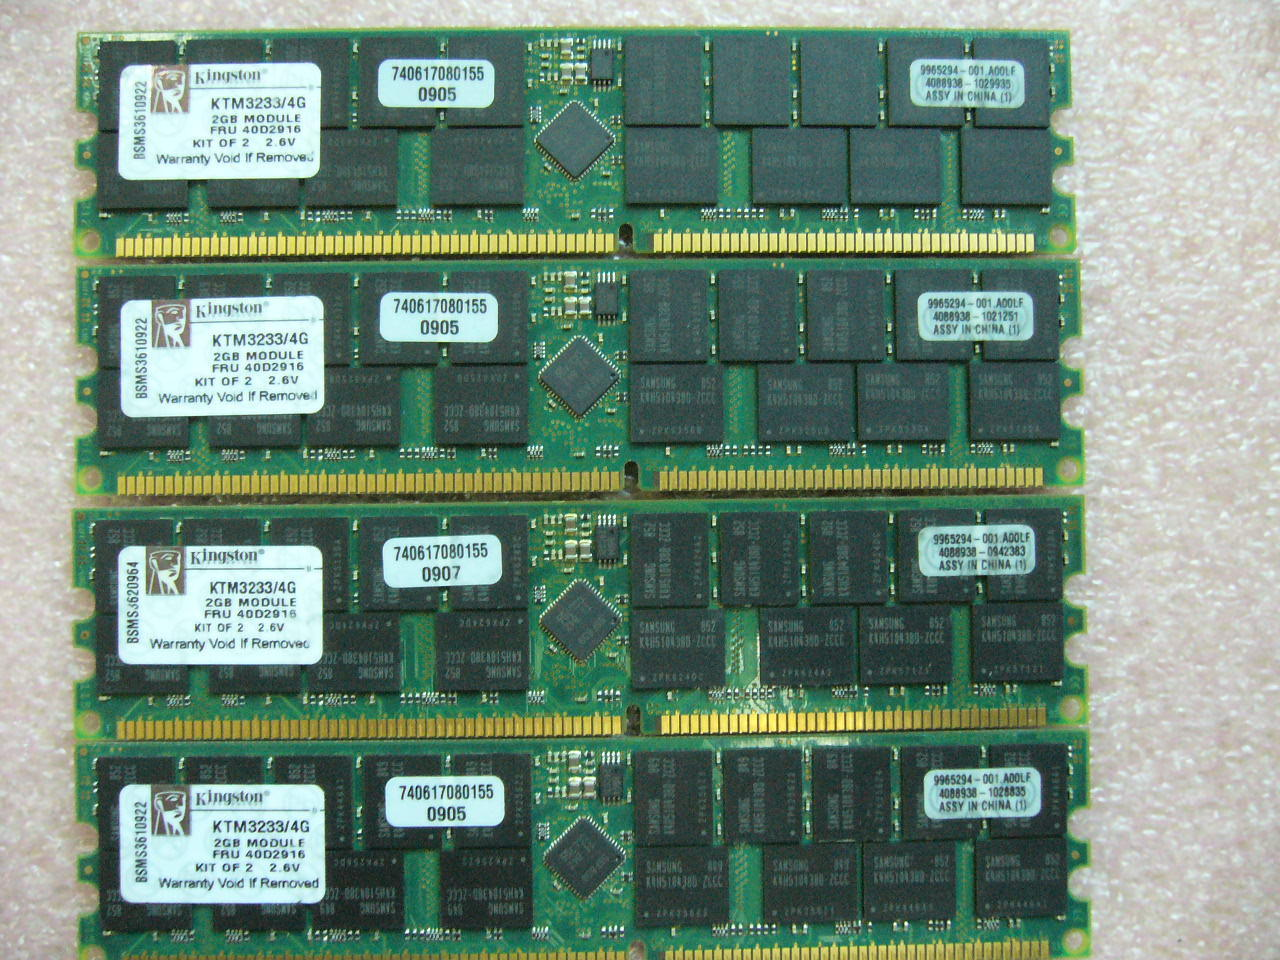 QTY 1x 2GB Kingston KTM3233/4G PC-3200R ECC Registered Server memory FRU 40D2916